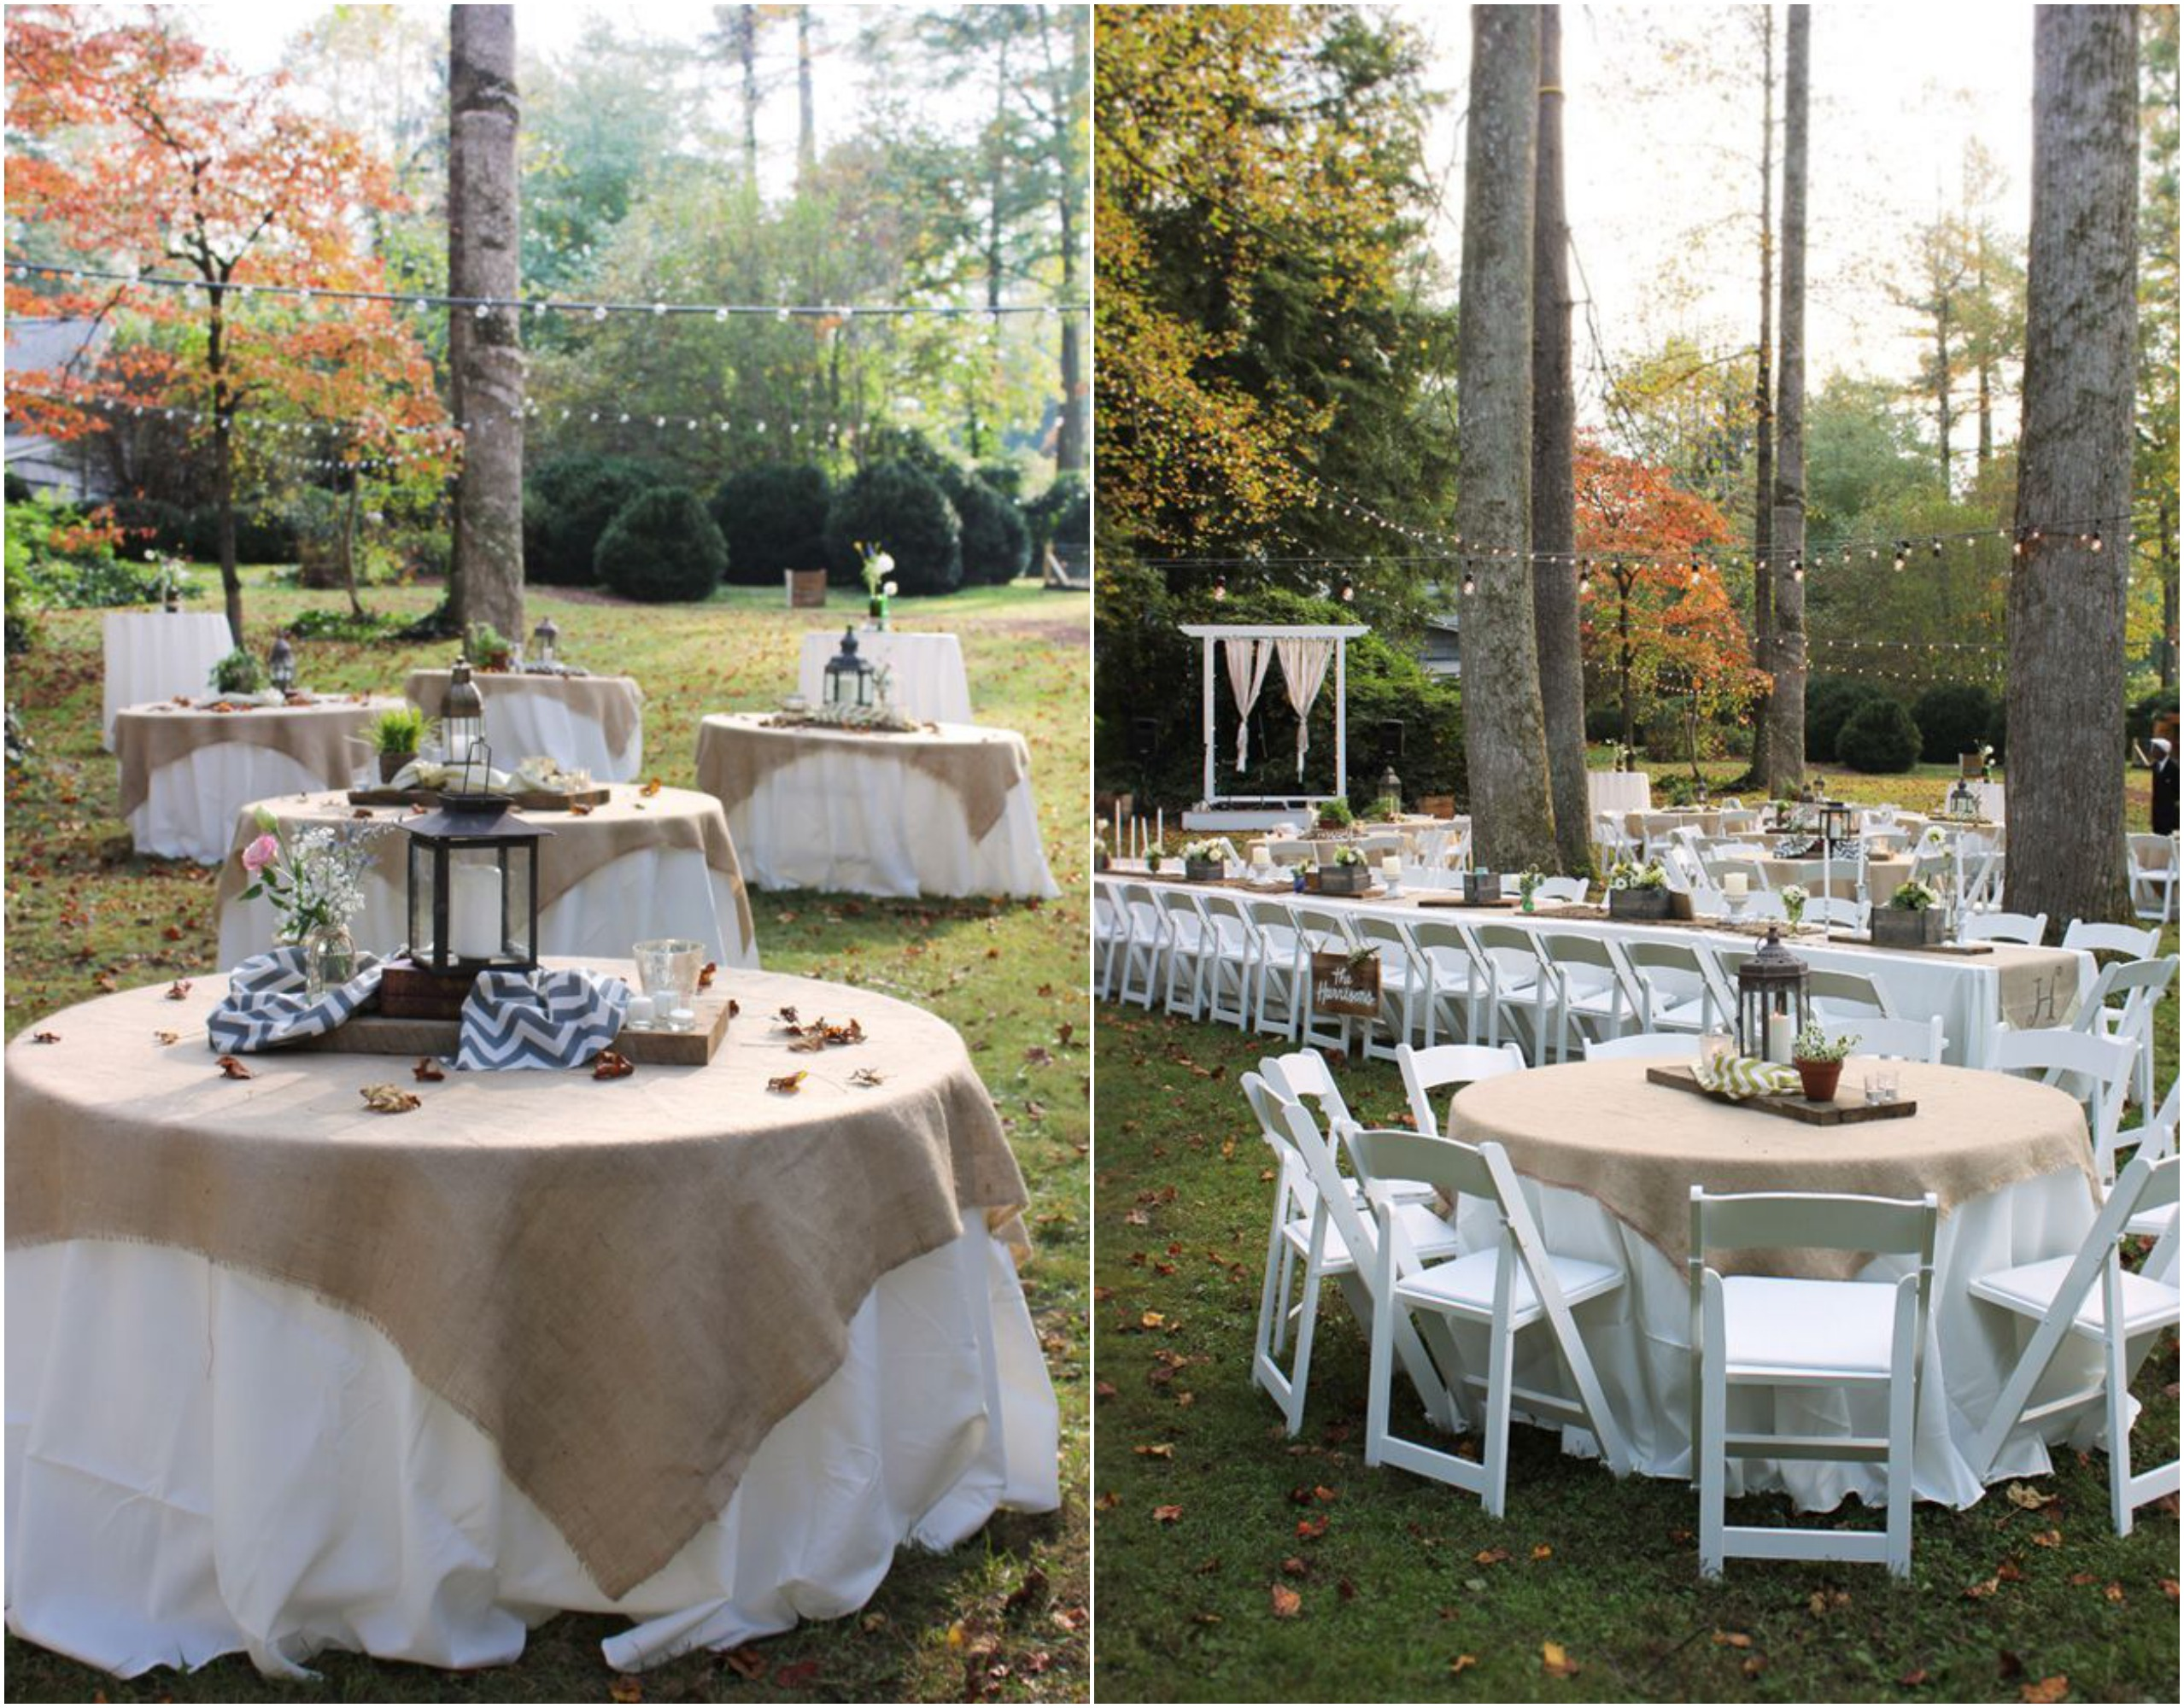 Noteable expressions 10 hot wedding trends for 2014 for Outdoor table decor ideas